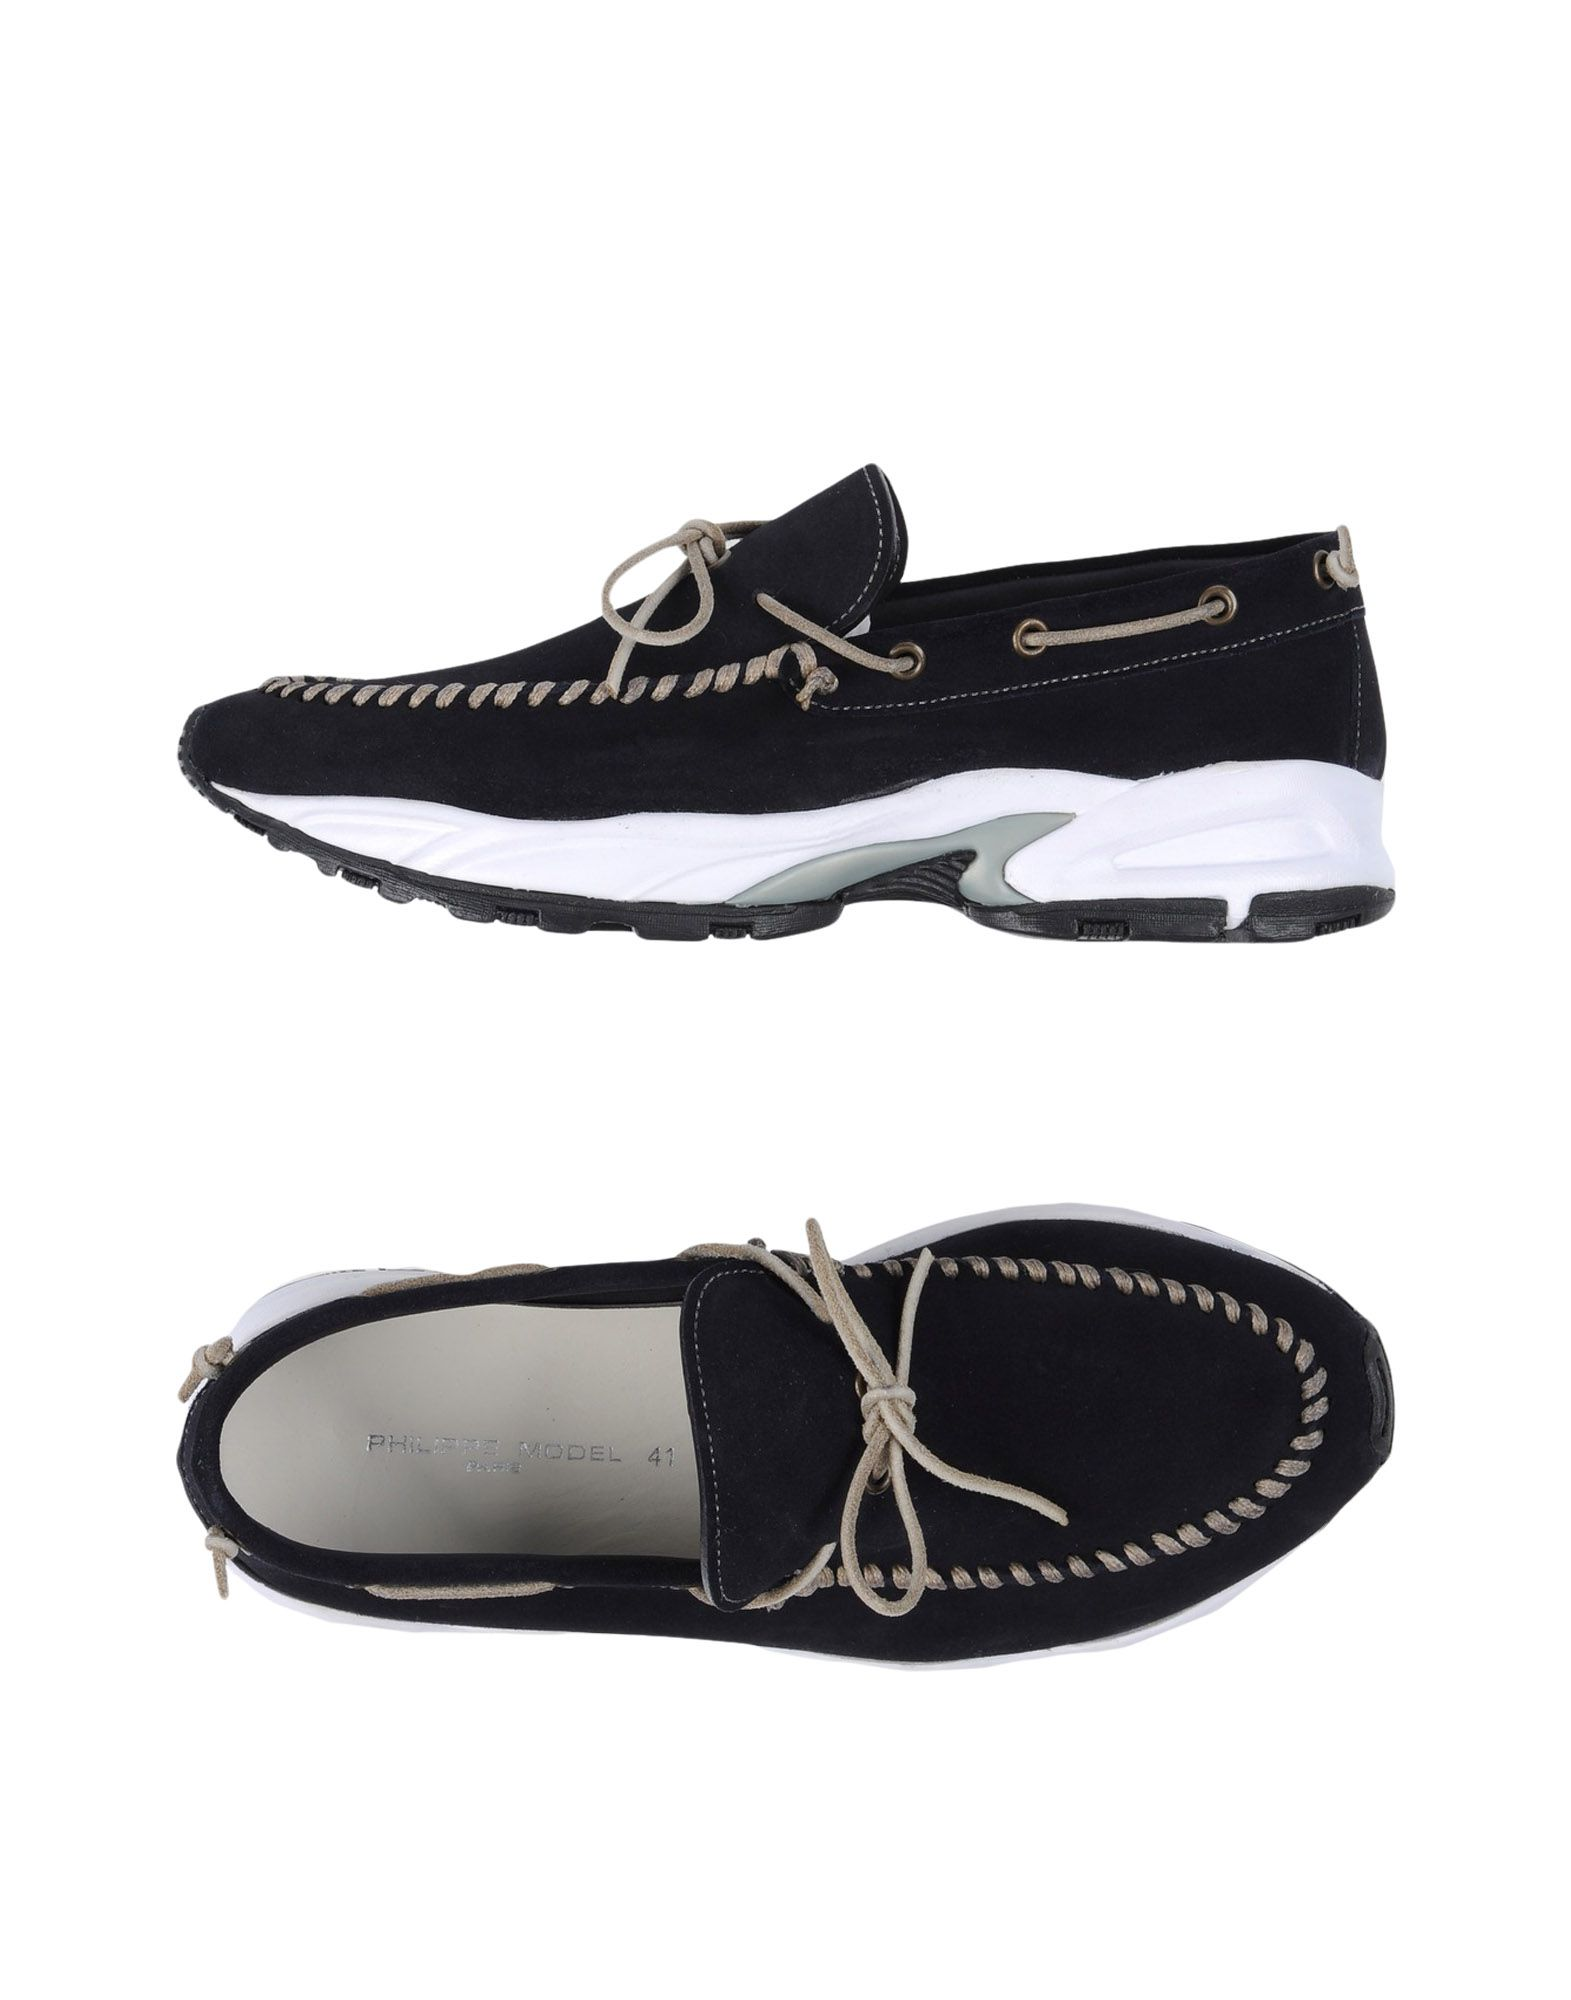 CHAUSSURES - MocassinsPhilippe Model zdDBHNA